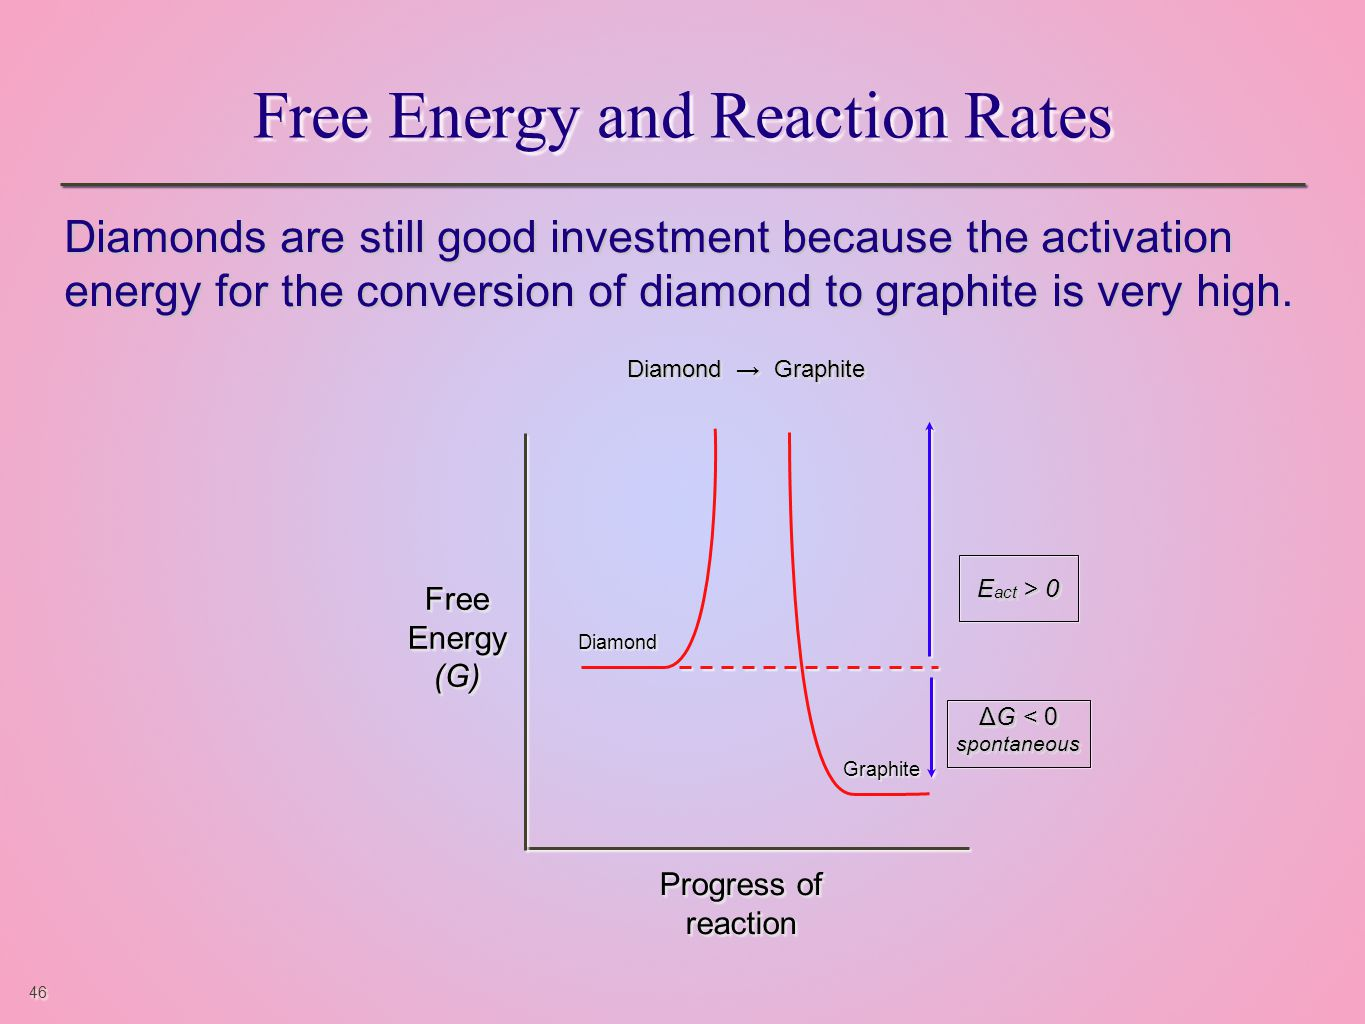 46 Free Energy and Reaction Rates Diamonds are still good investment because the activation energy for the conversion of diamond to graphite is very high.